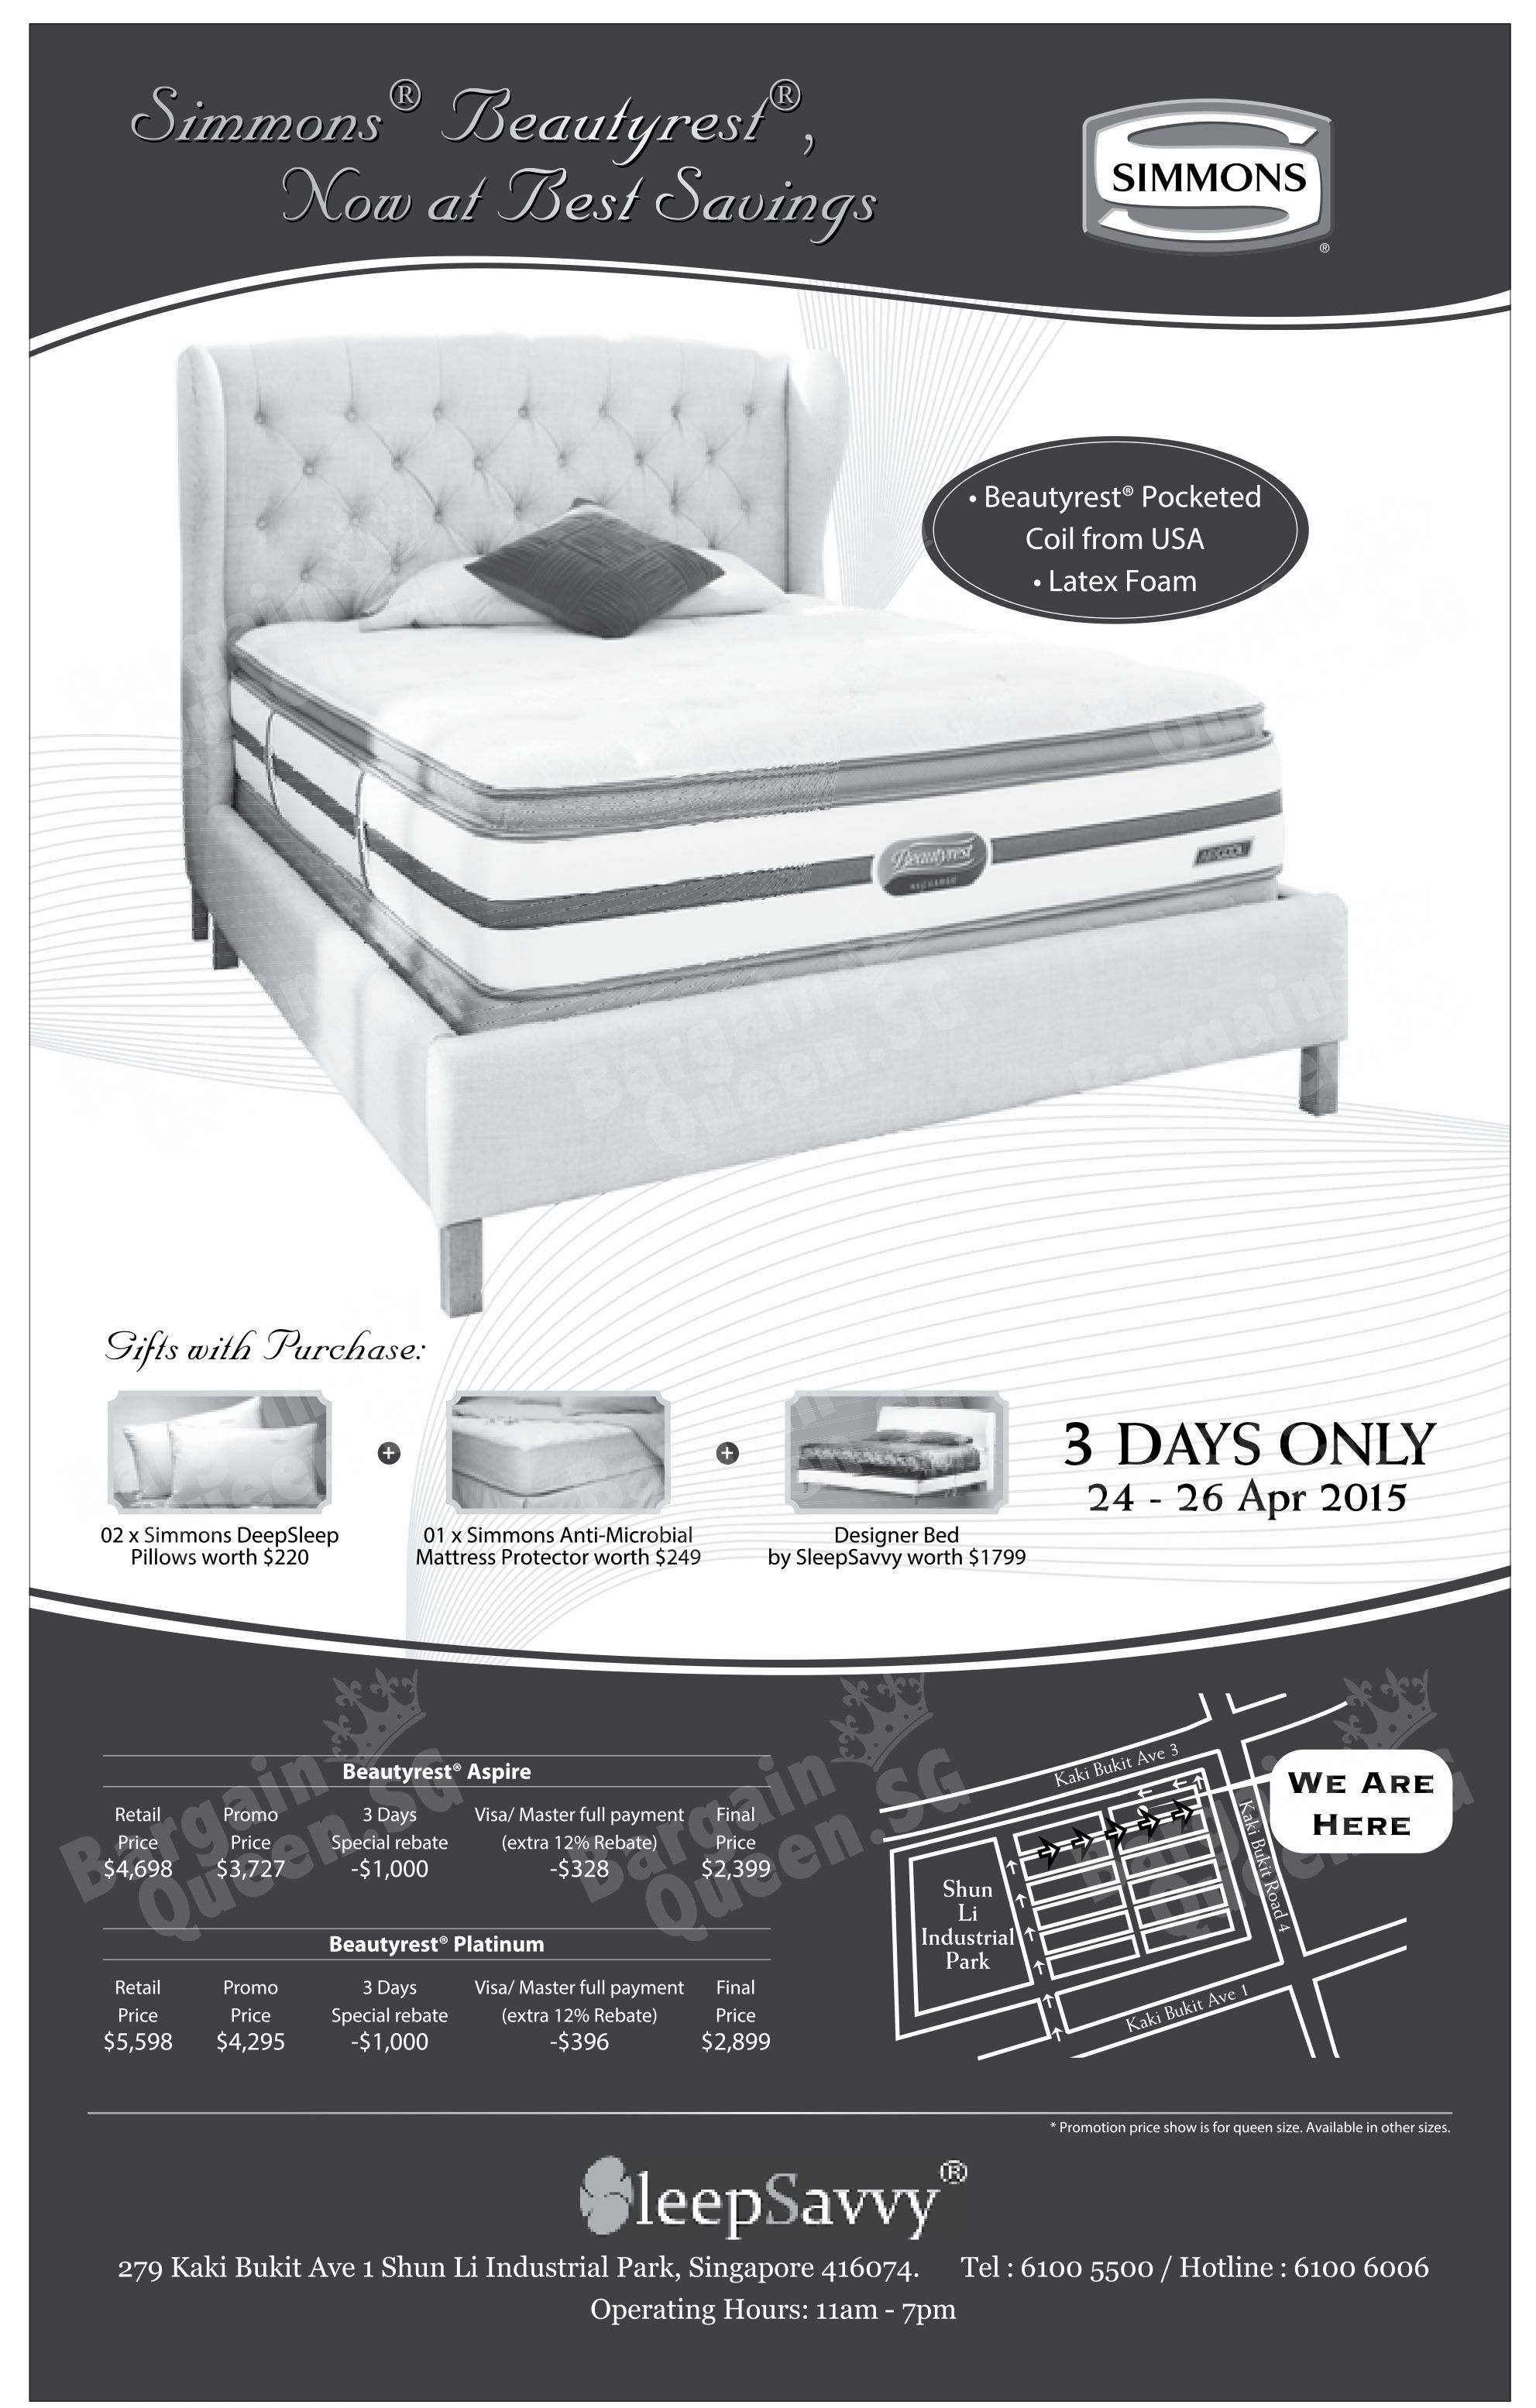 Simmons Ad Singapore Google Search Bed Mattress Best Savings